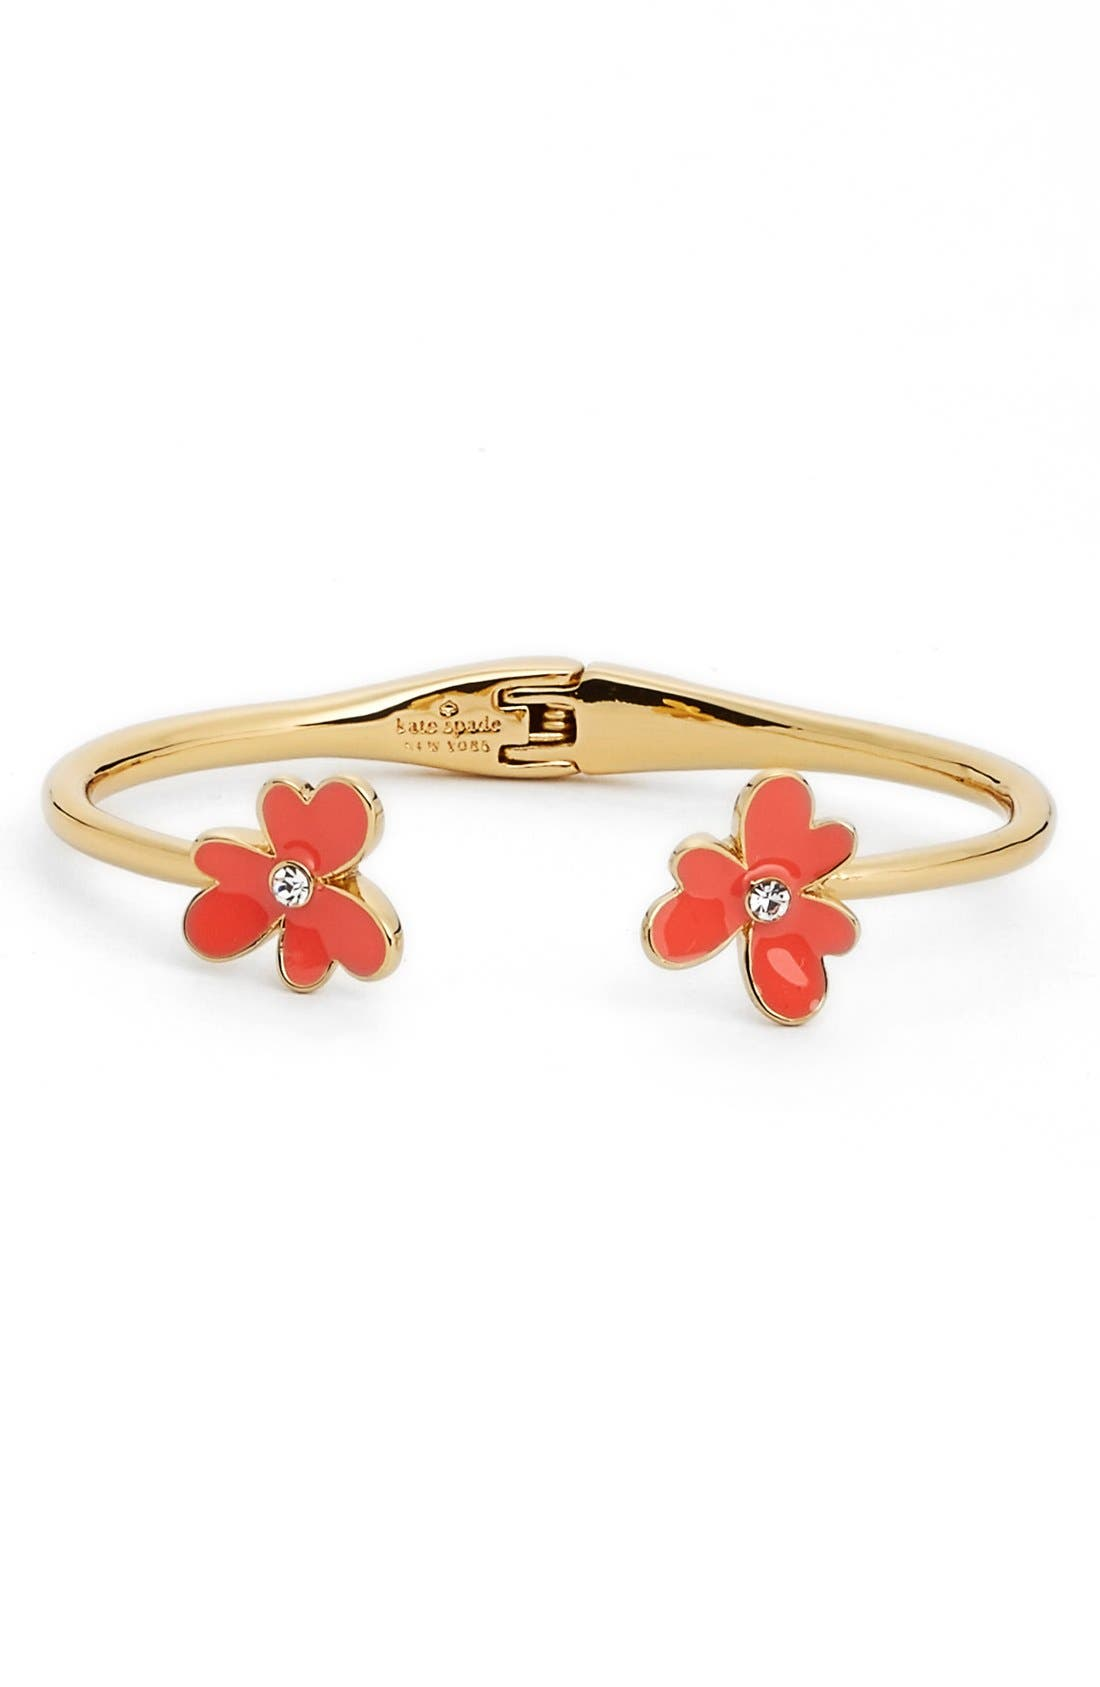 Alternate Image 1 Selected - kate spade new york 'pansy blossoms' hinged cuff